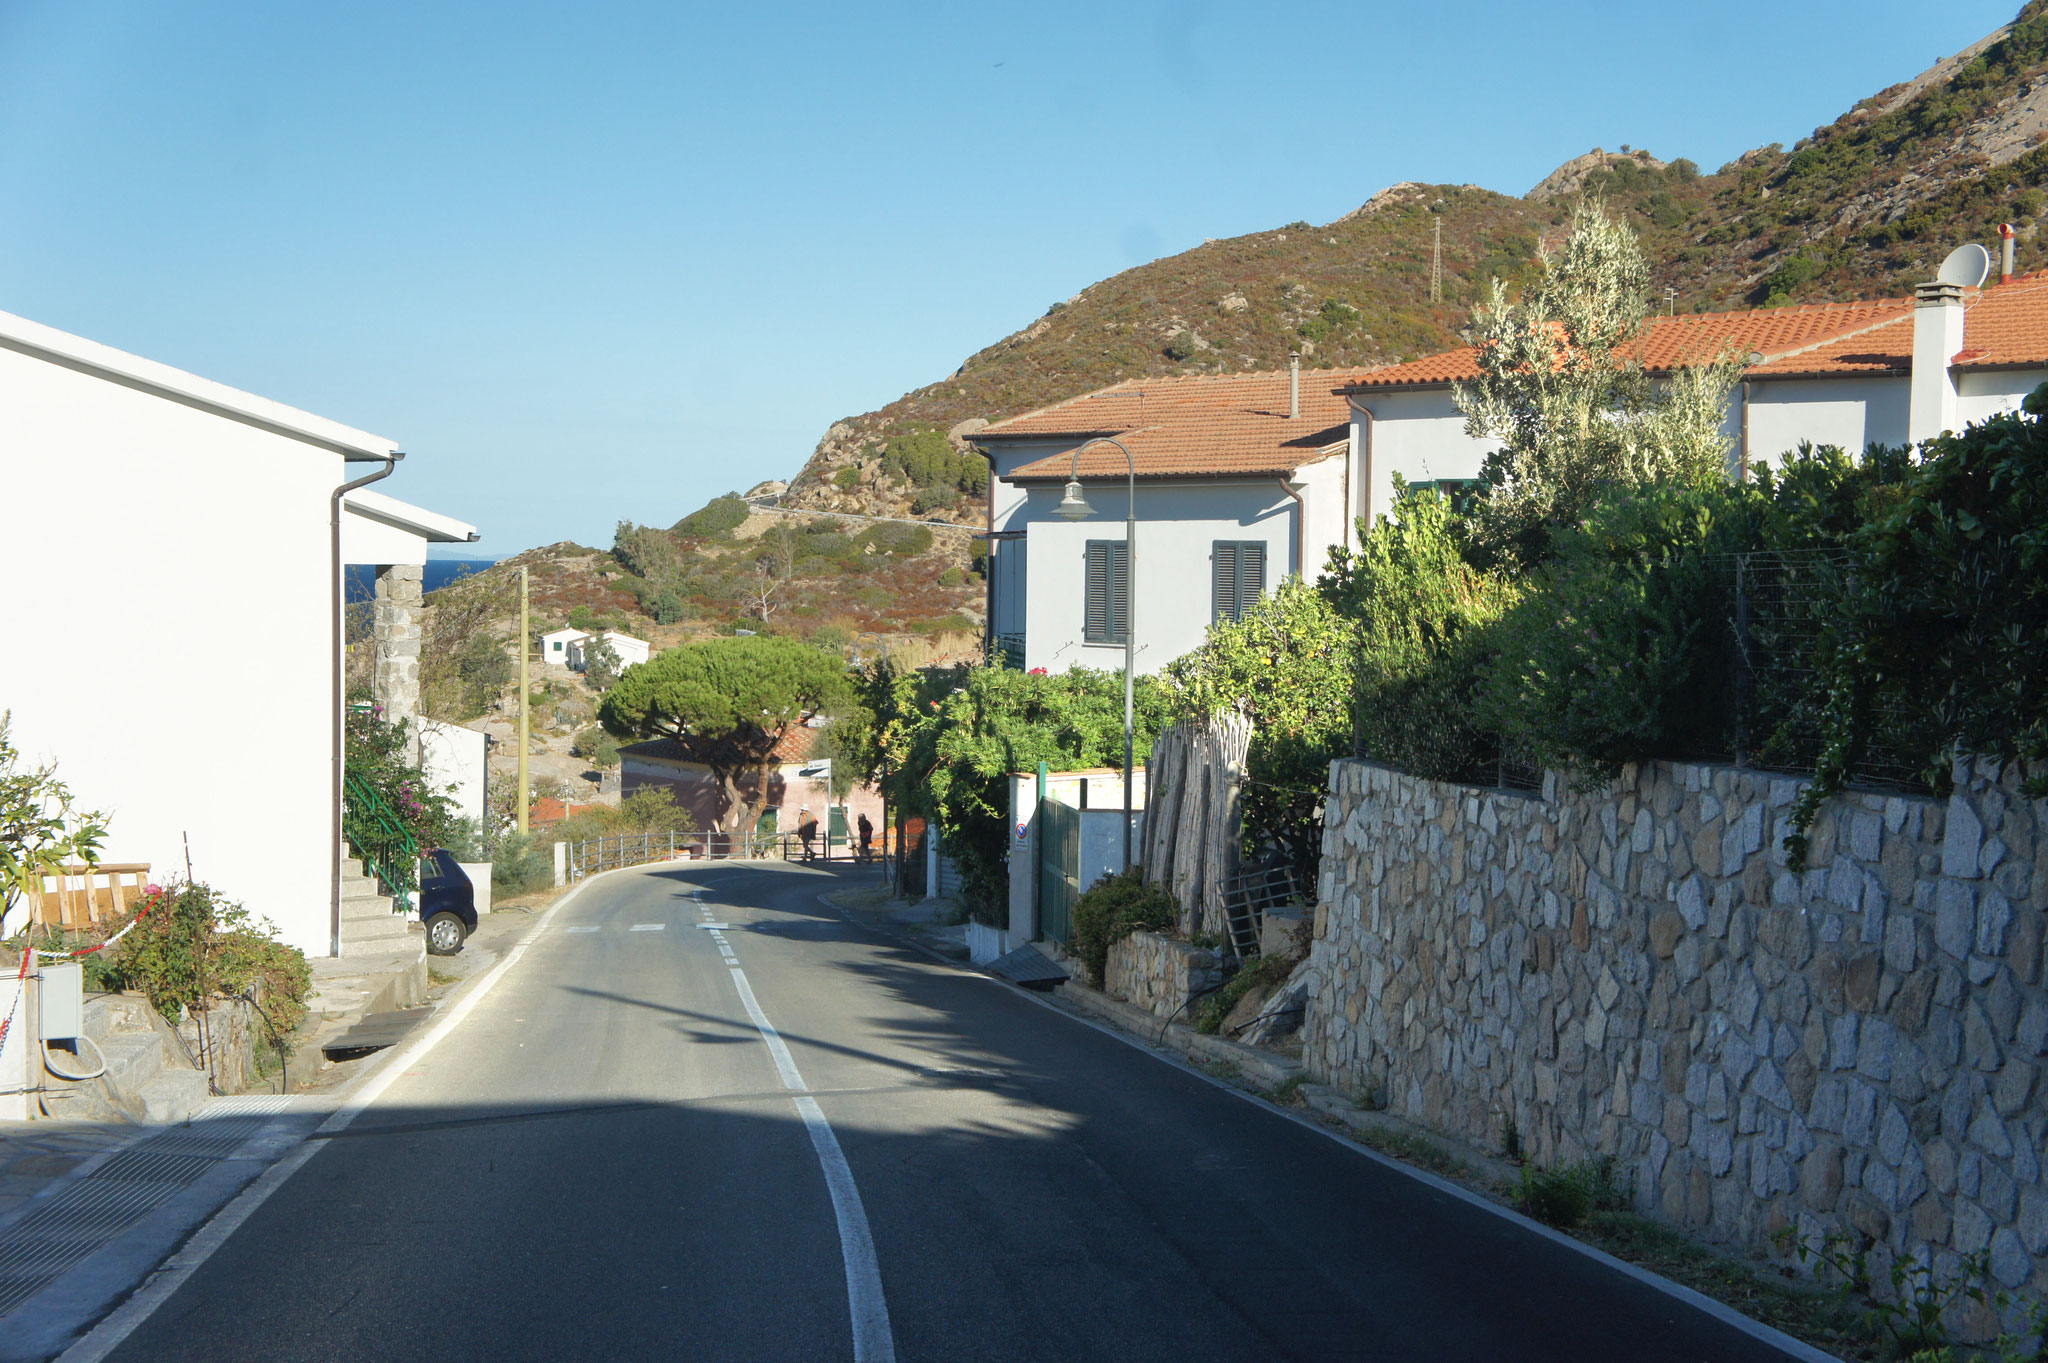 road to Chiessi village